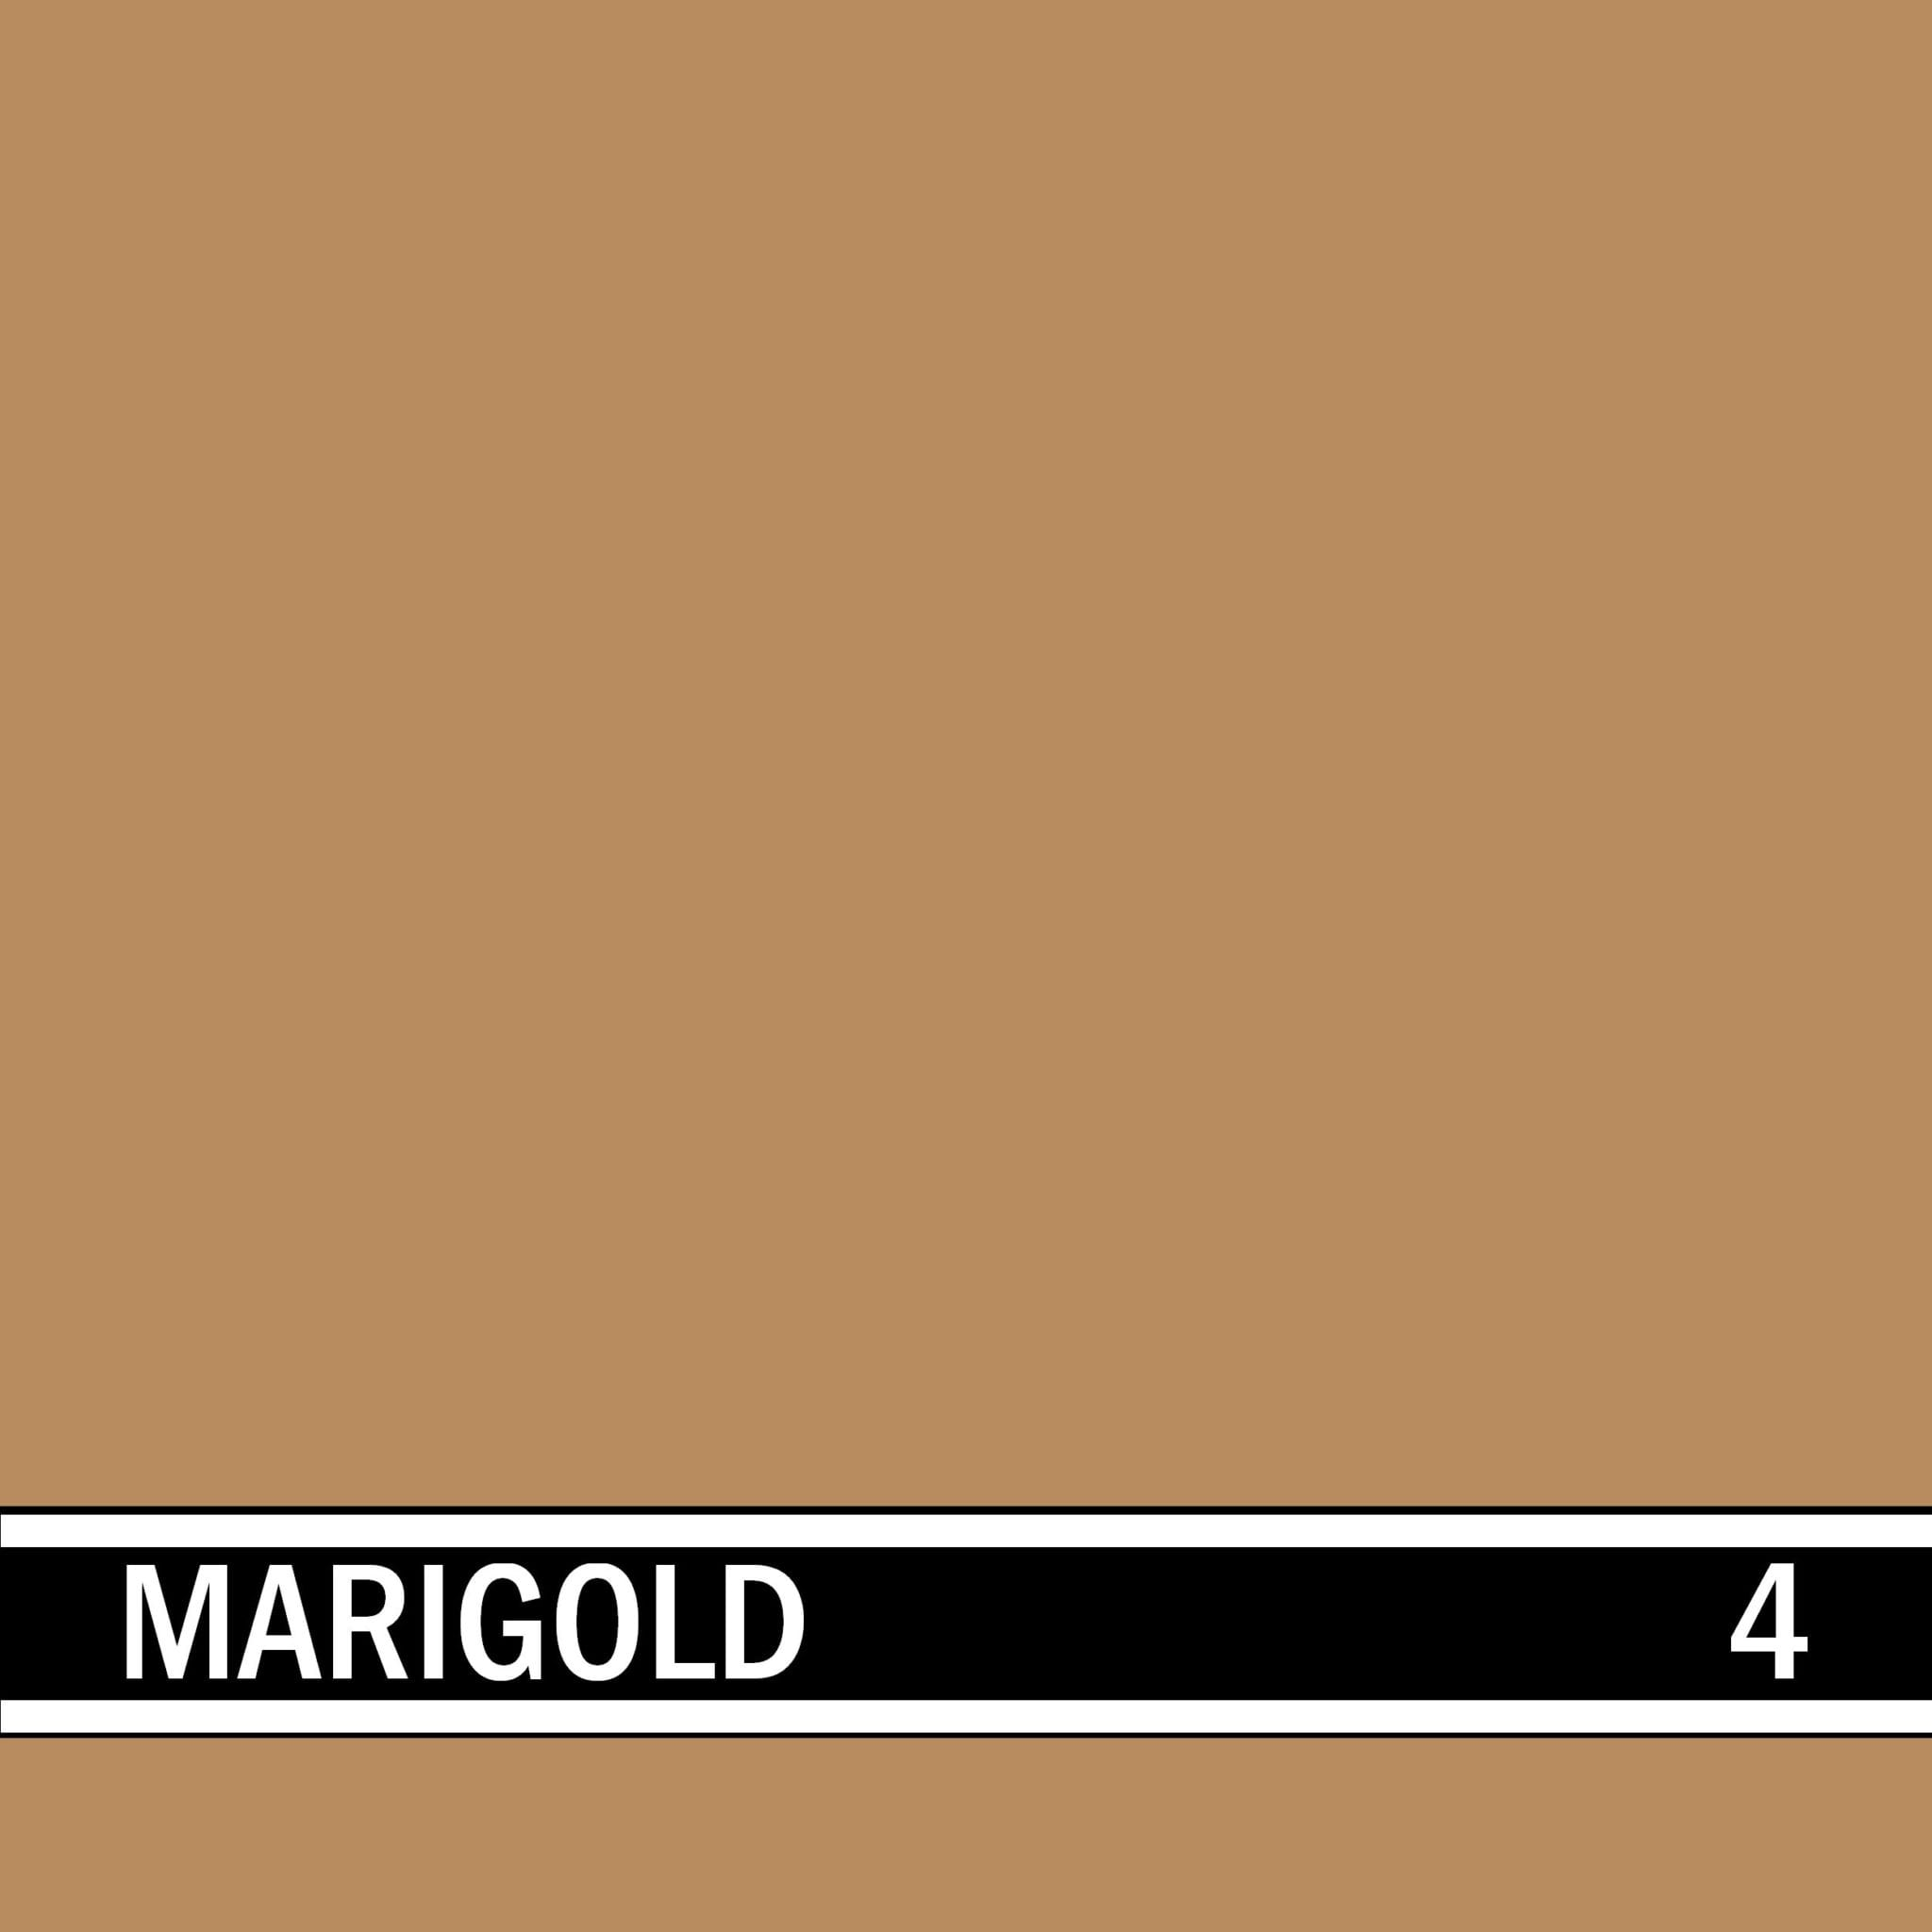 Marigold integral concrete color for stamped concrete and decorative colored concrete